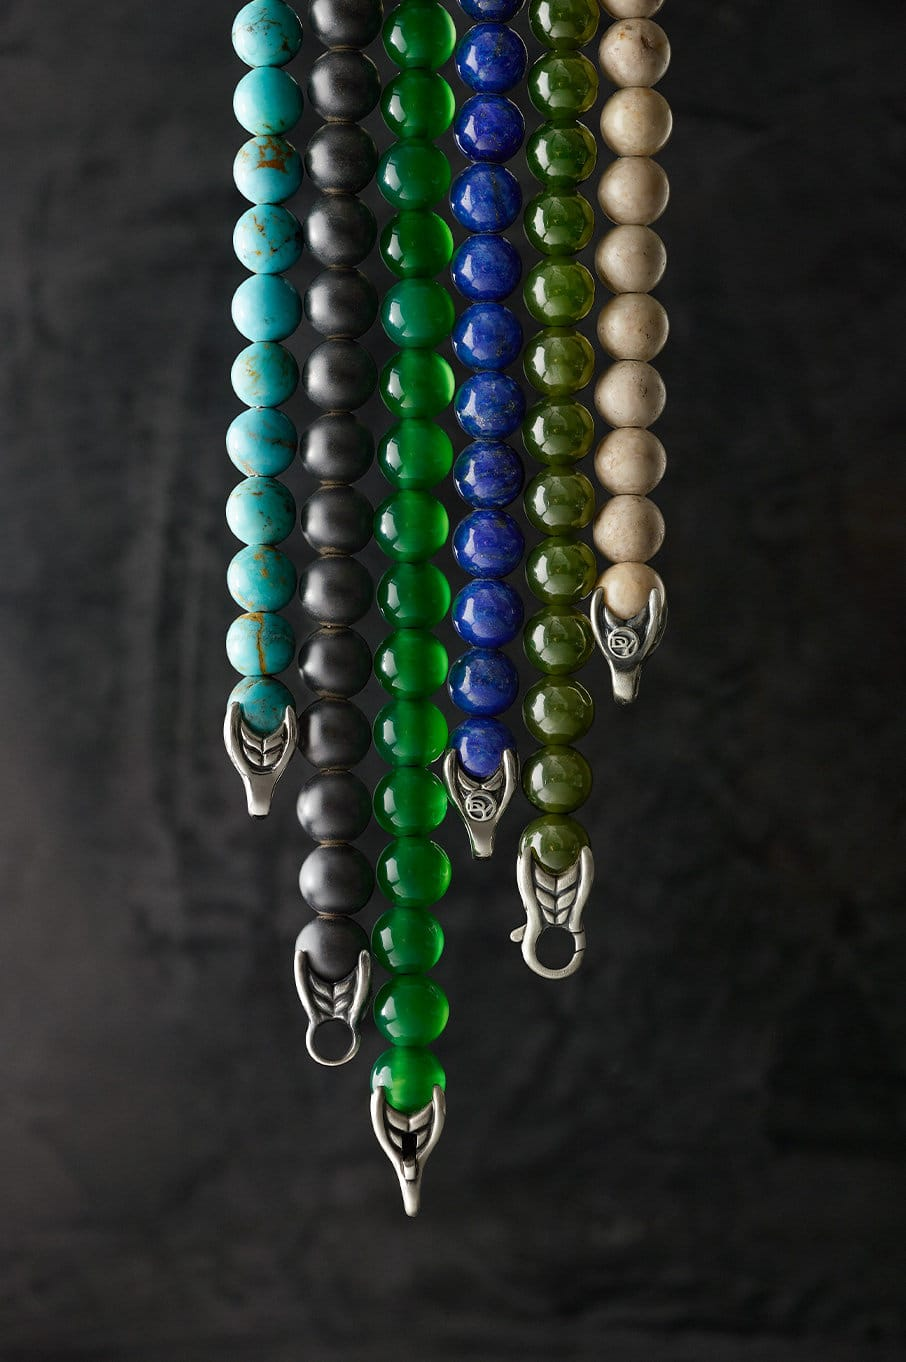 A color photo shows six David Yurman Spiritual Beads bracelets hanging in front of a black background. The jewelry is crafted from various colored gemstones and sterling silver.